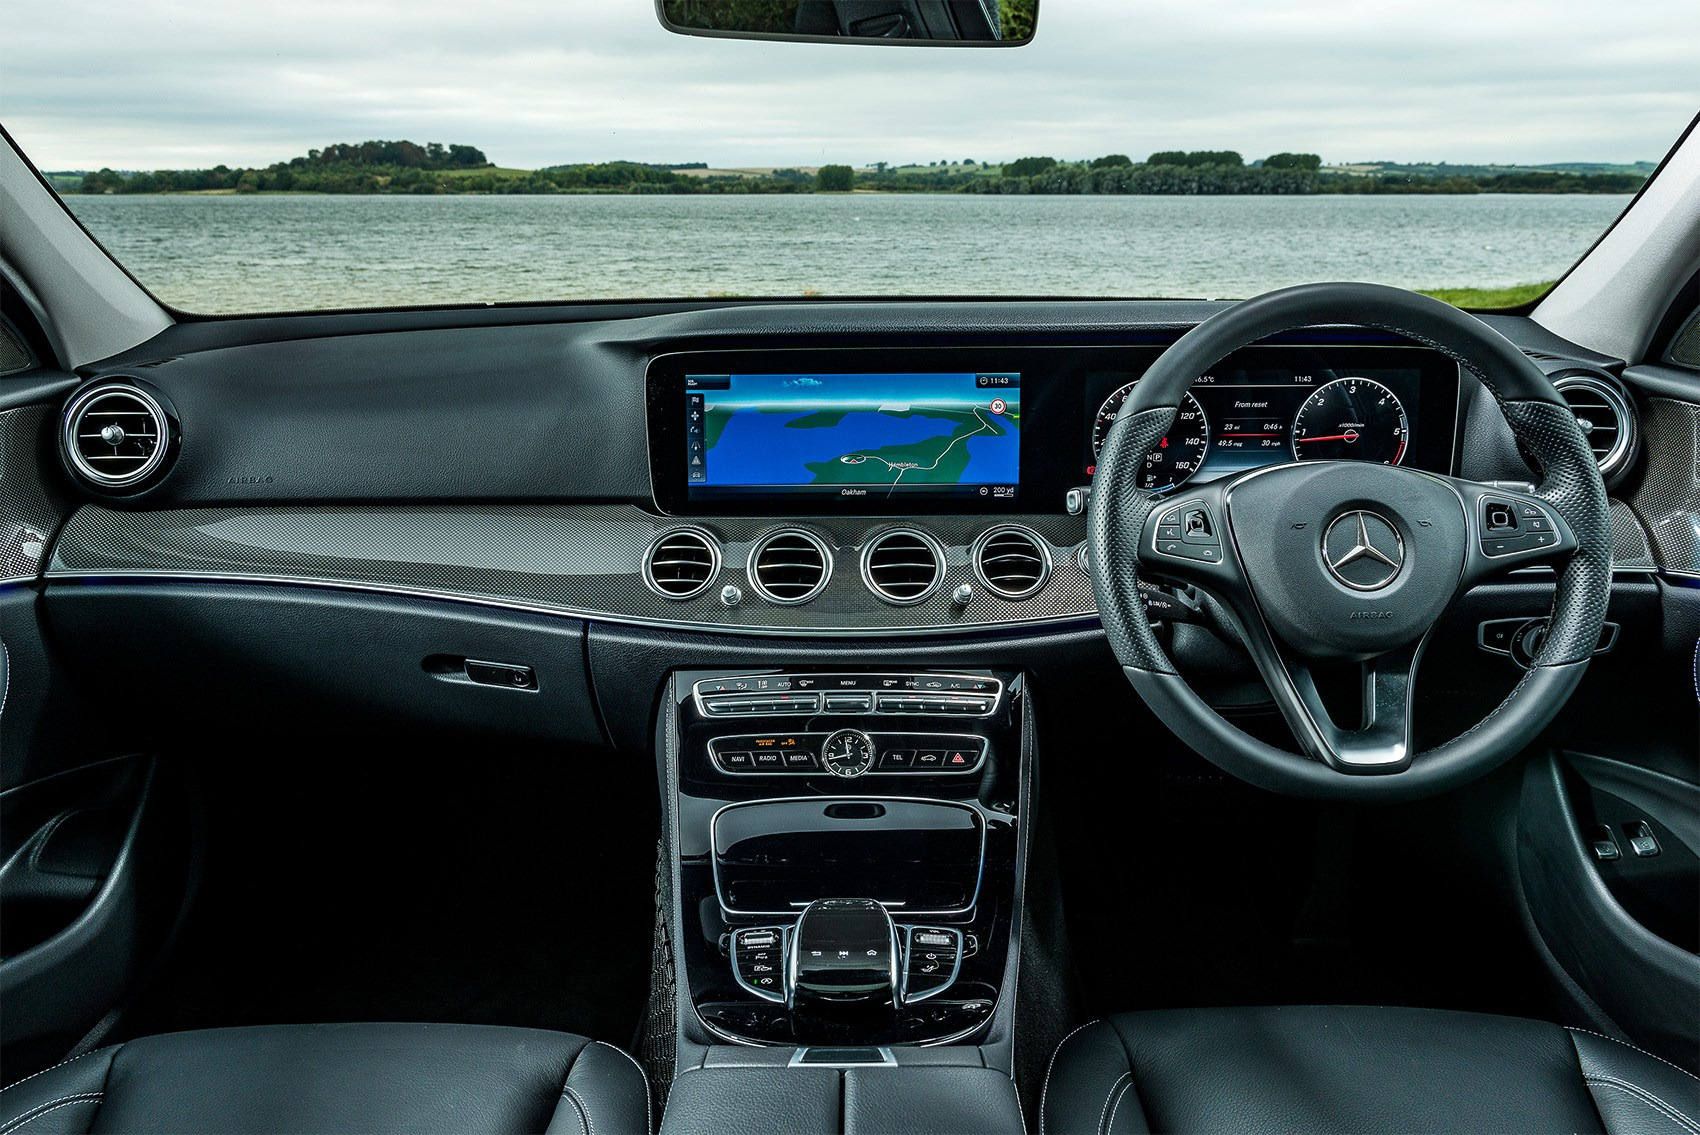 https://car-images.bauersecure.com/pagefiles/78547/1752x1168/v90-5-series-e-class_04.jpg?mode=max&quality=90&scale=down